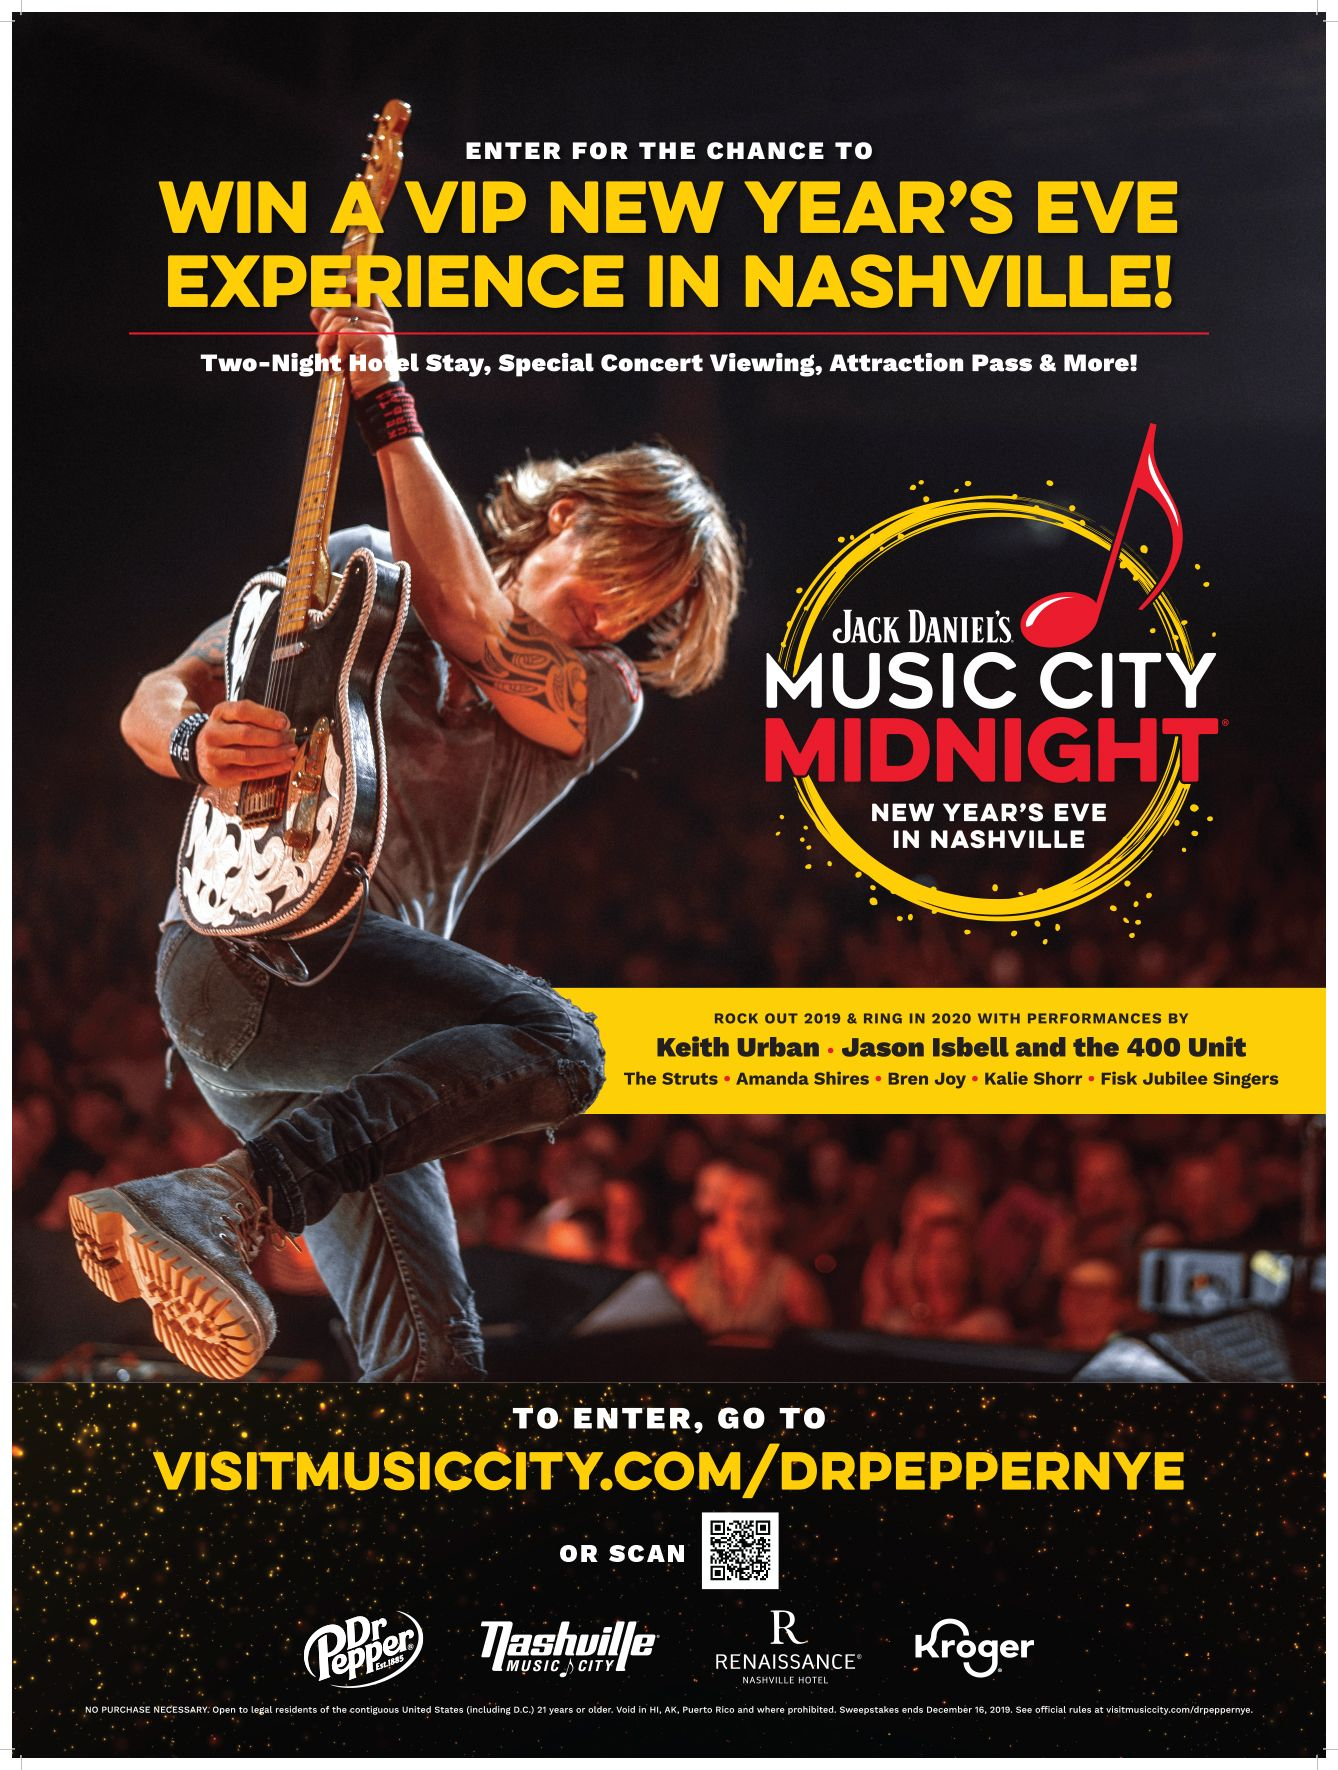 Enter for a chance to win a trip to Nashville. Win a